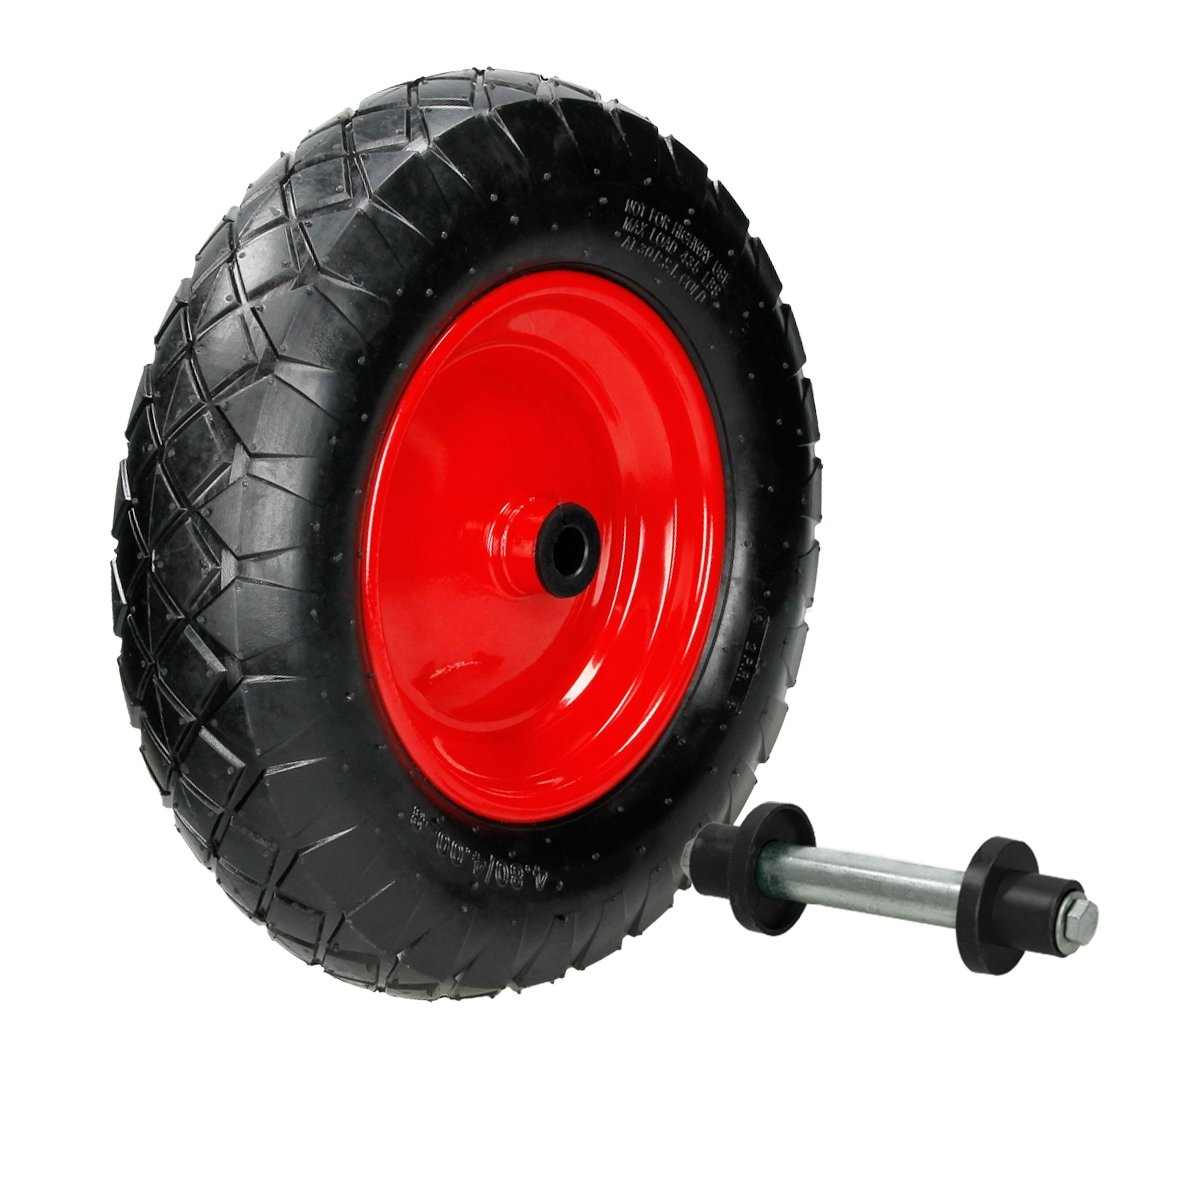 ECD Germany Wheelbarrow Wheel with Axle 4, 80/4, 00-8 Inflatable Tire Car Whee Max. Load 200 kg Heavy Duty Rubber Ø 390 Wheel Diamter 00-8 Inflatable Tire Car Whee Max. Load 200 kg Heavy Duty Rubber Ø390 Wheel Diamter